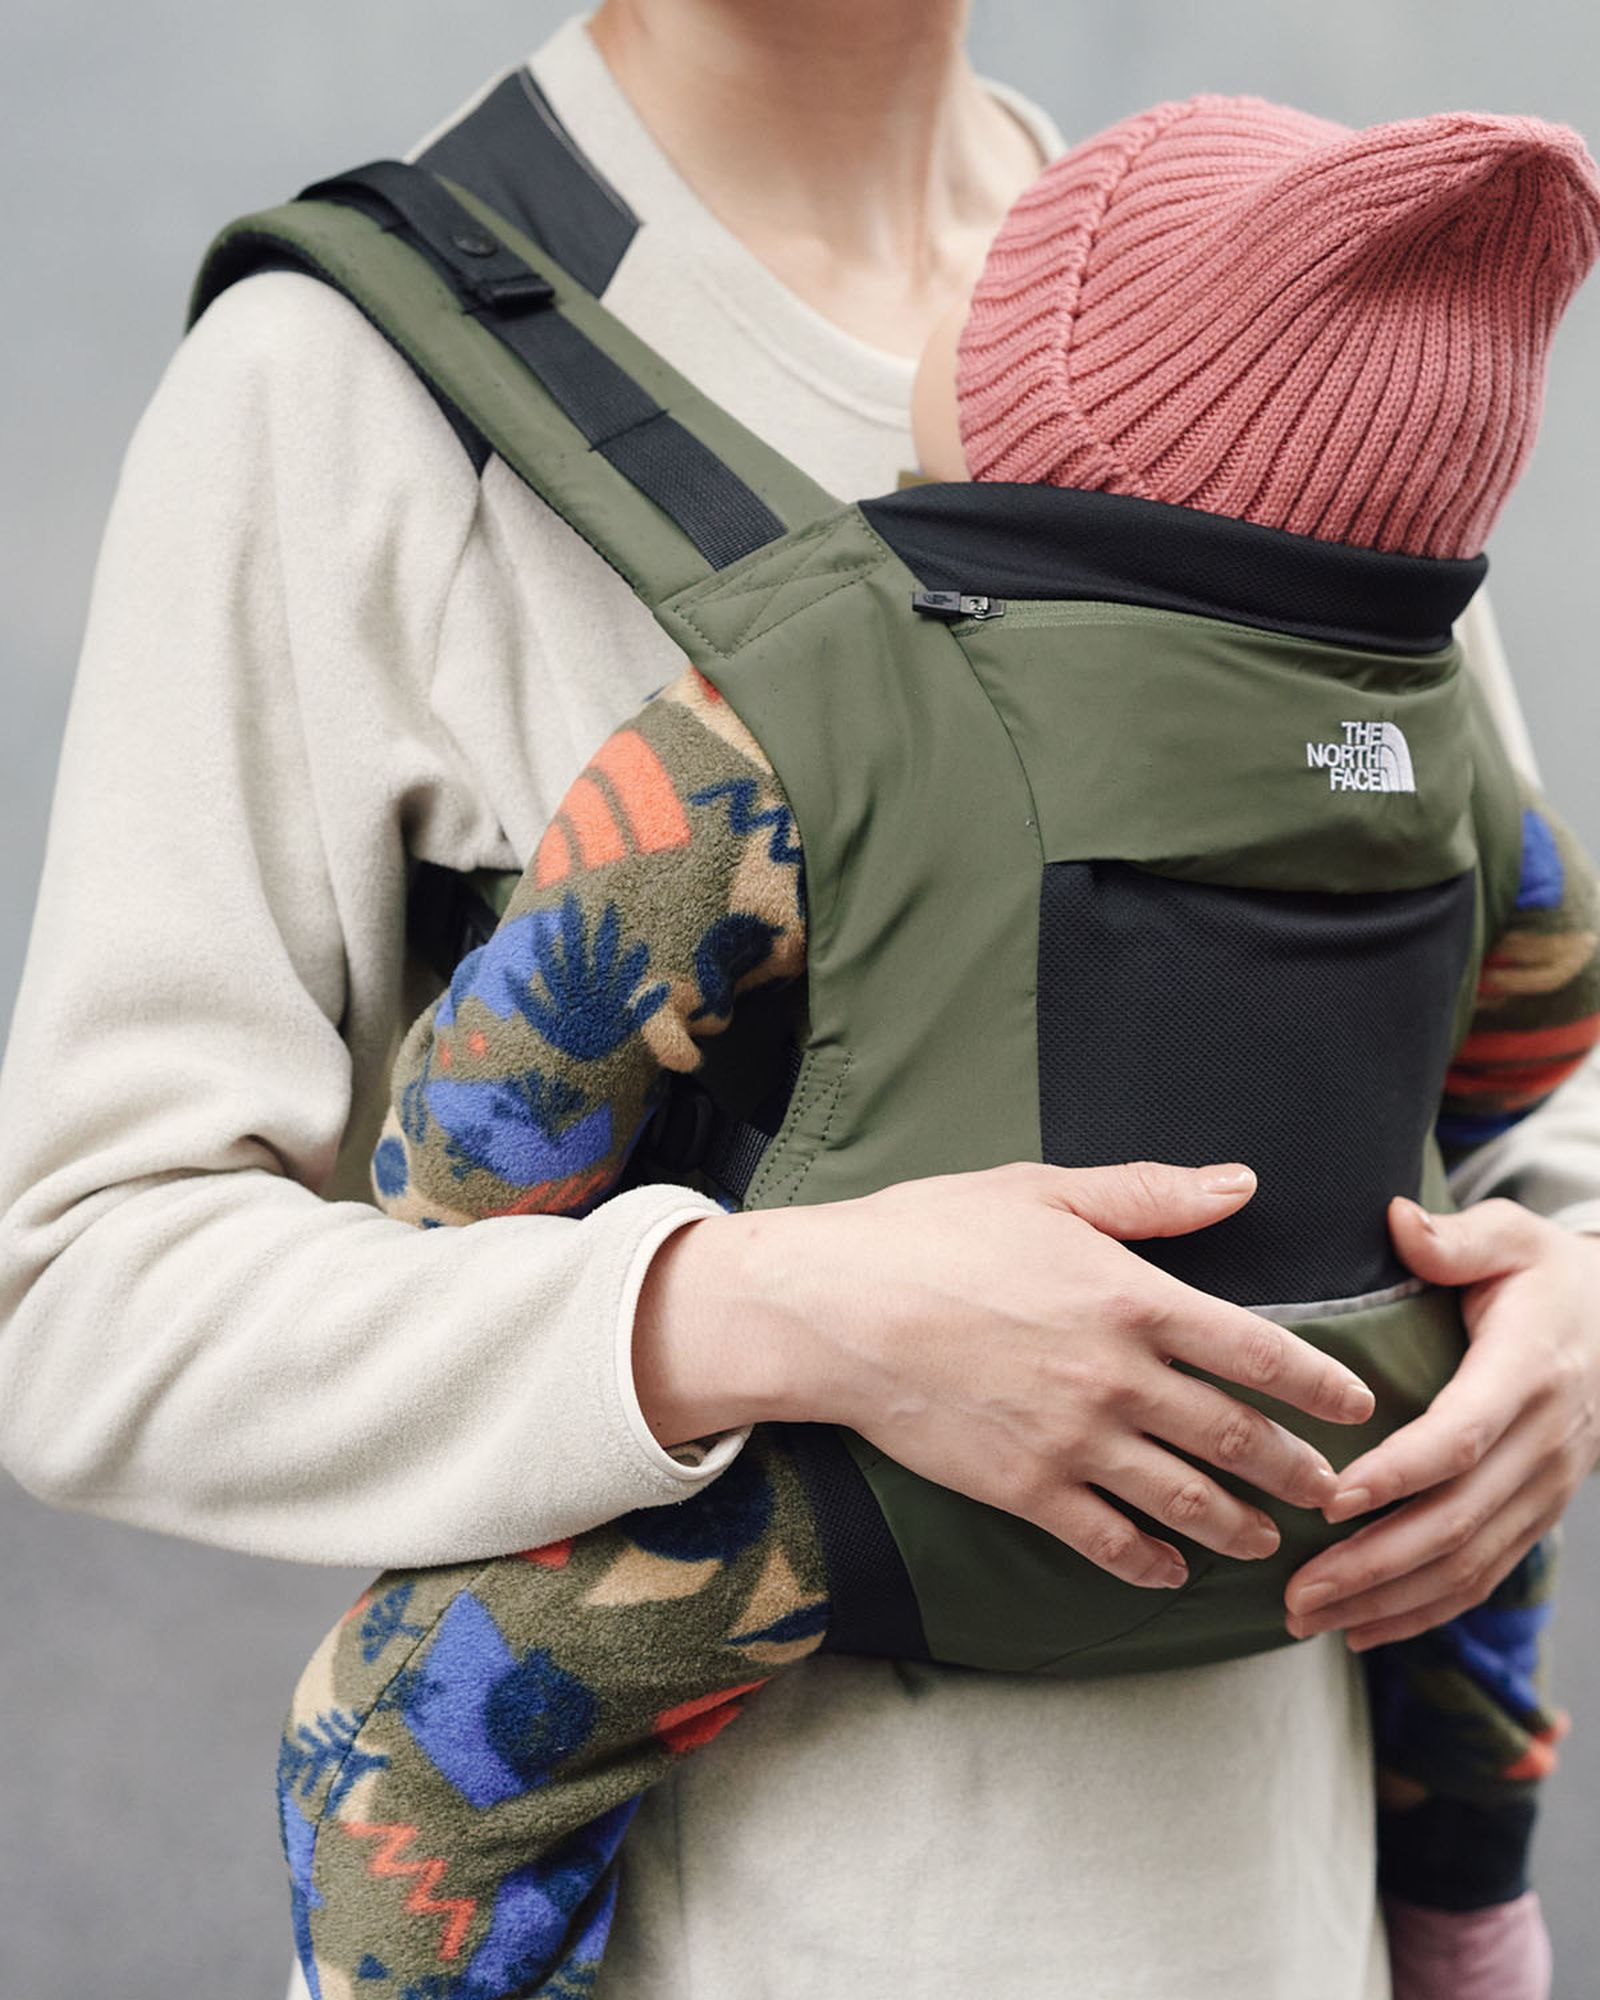 the-north-face-baby-carrier-05